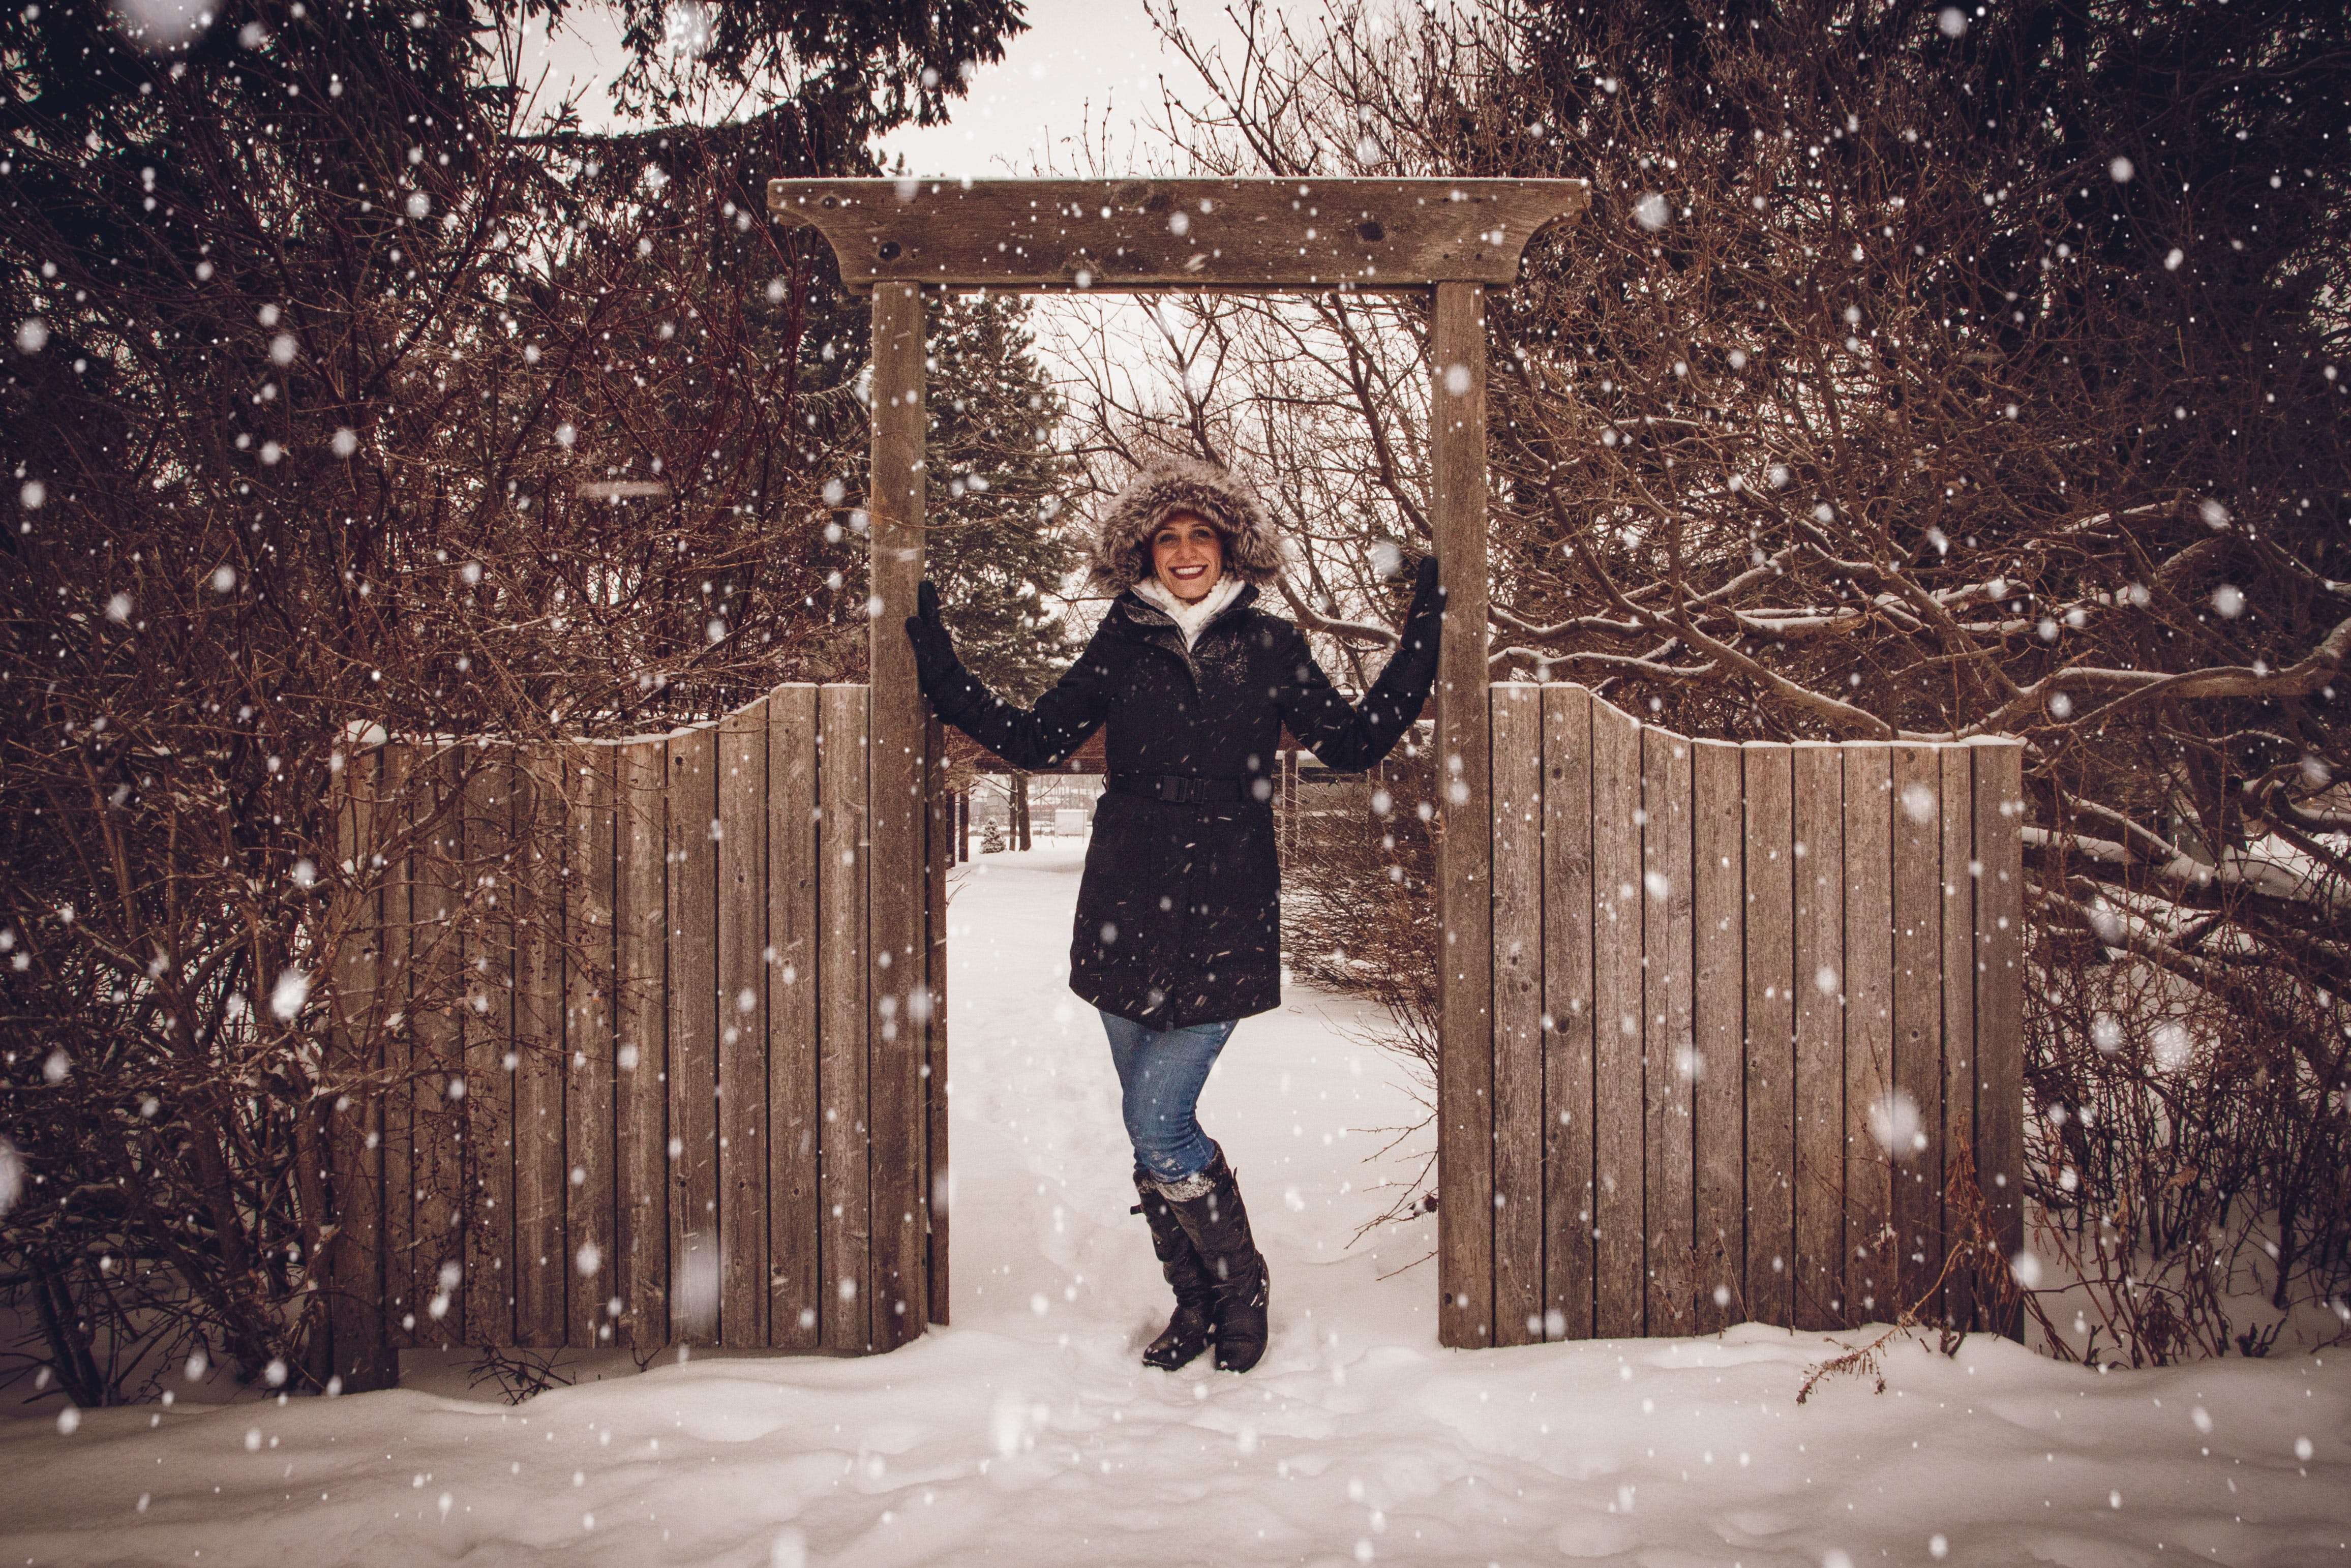 Woman in Black Coat Beside Fence during Snow